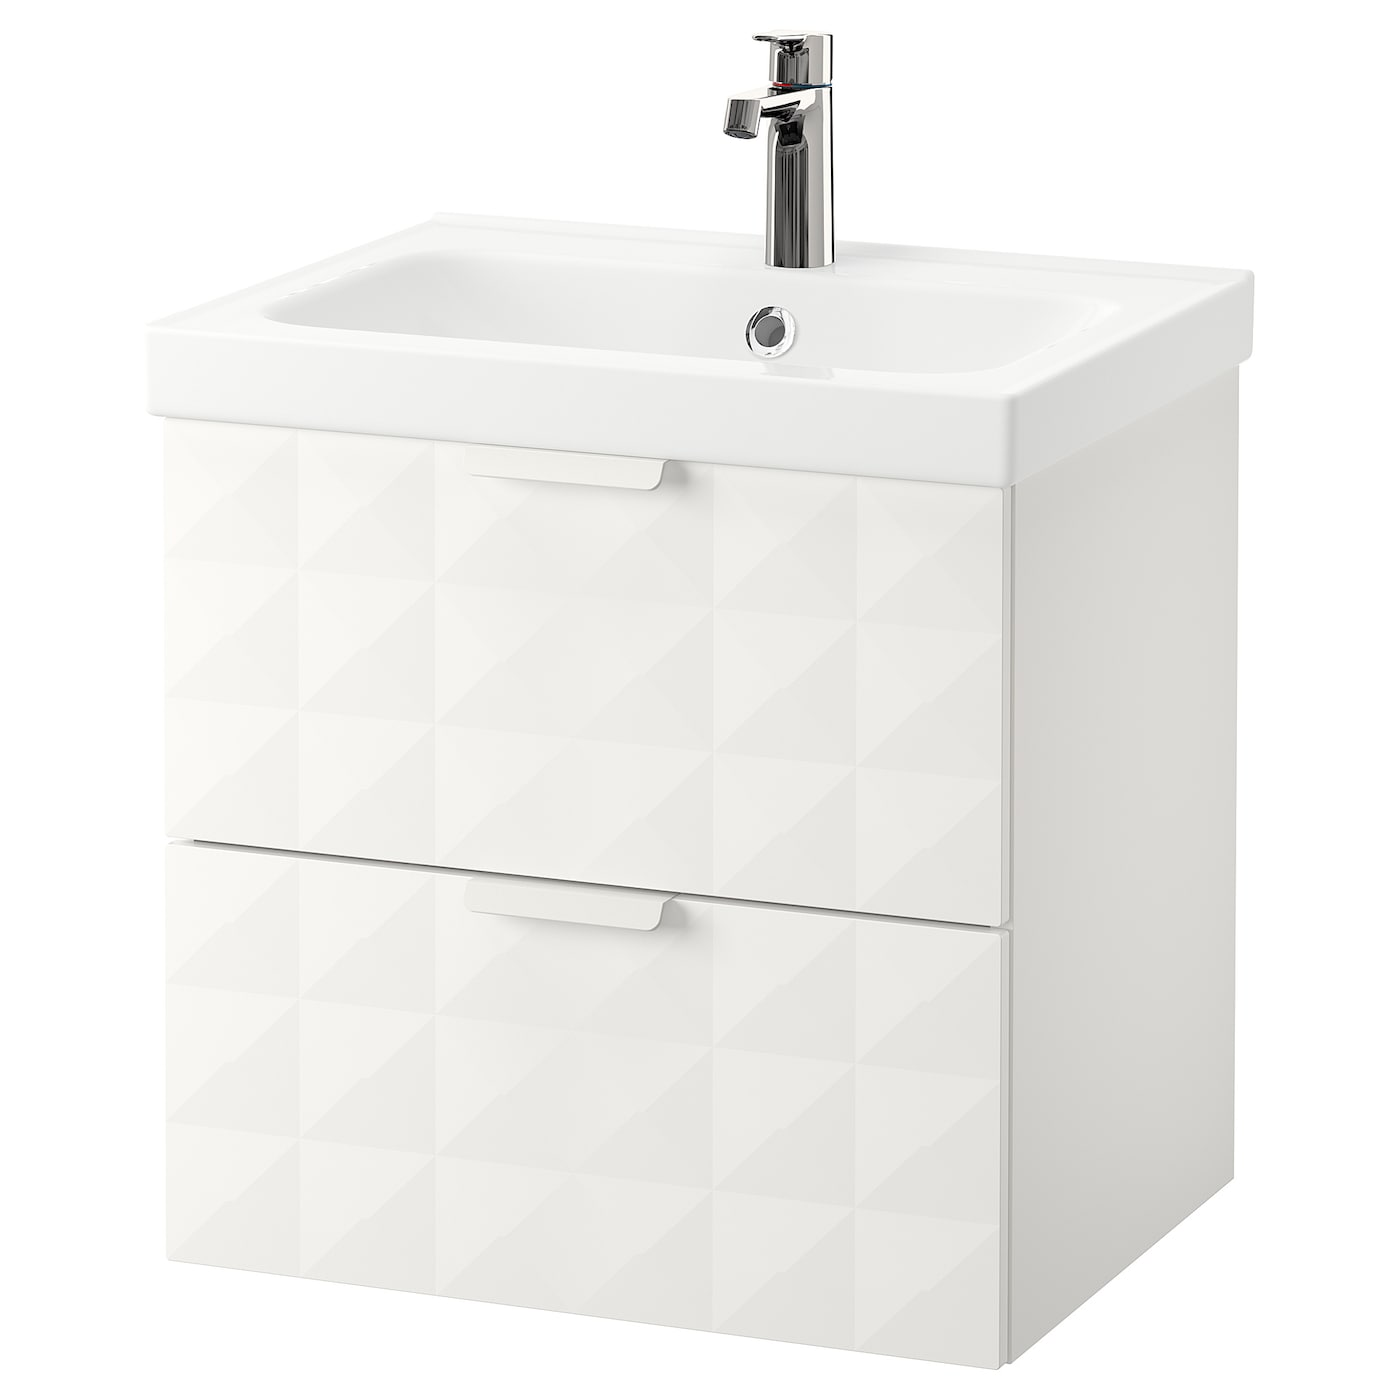 bathroom sink units ikea odensvik godmorgon wash stand with 2 drawers resj 246 n white 16596